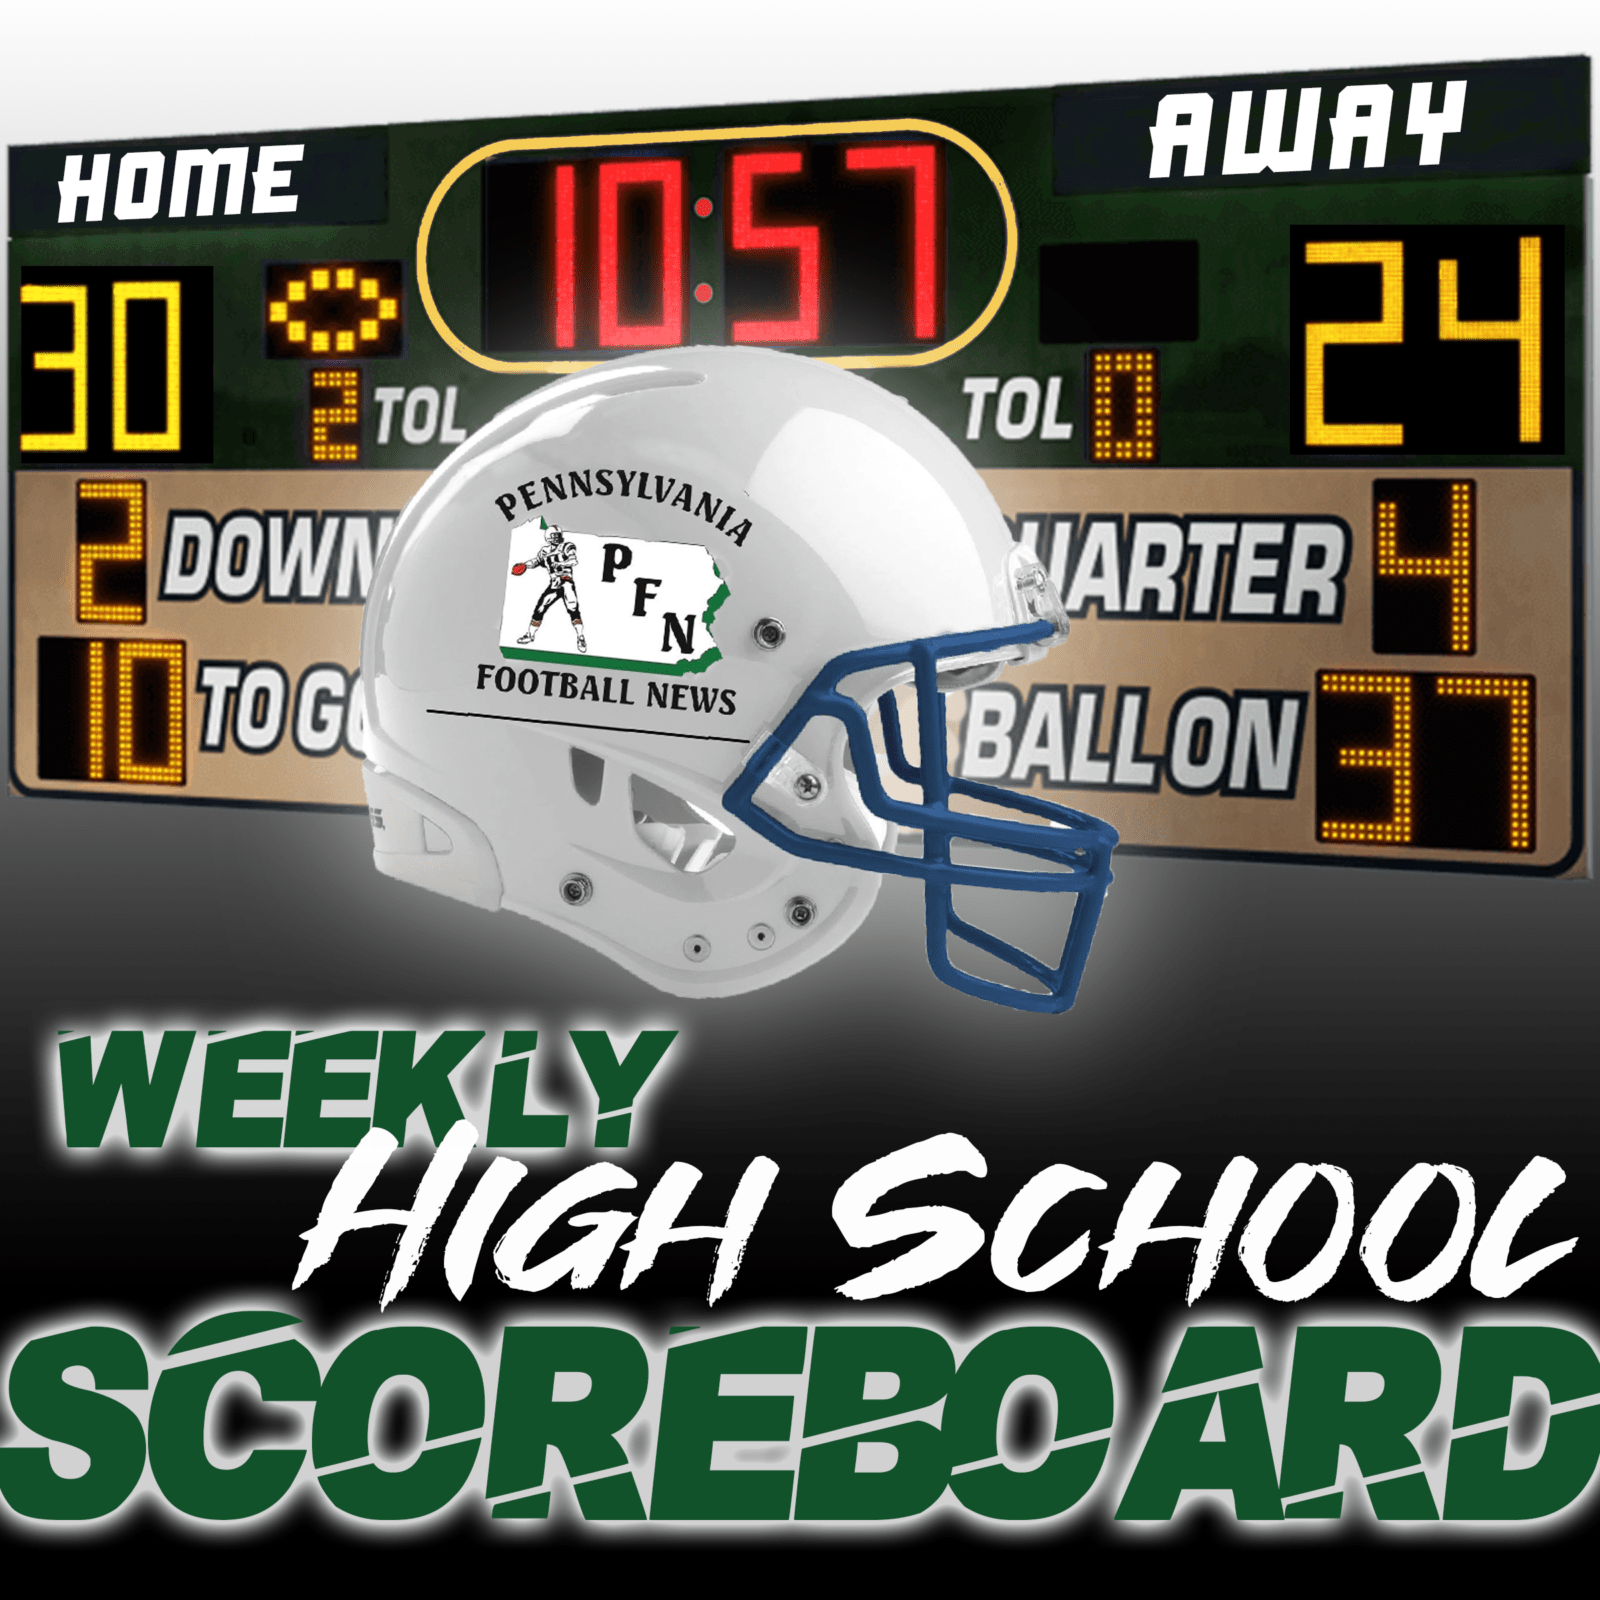 PA Football News March 31-April 3 2021 Spring Scoreboard